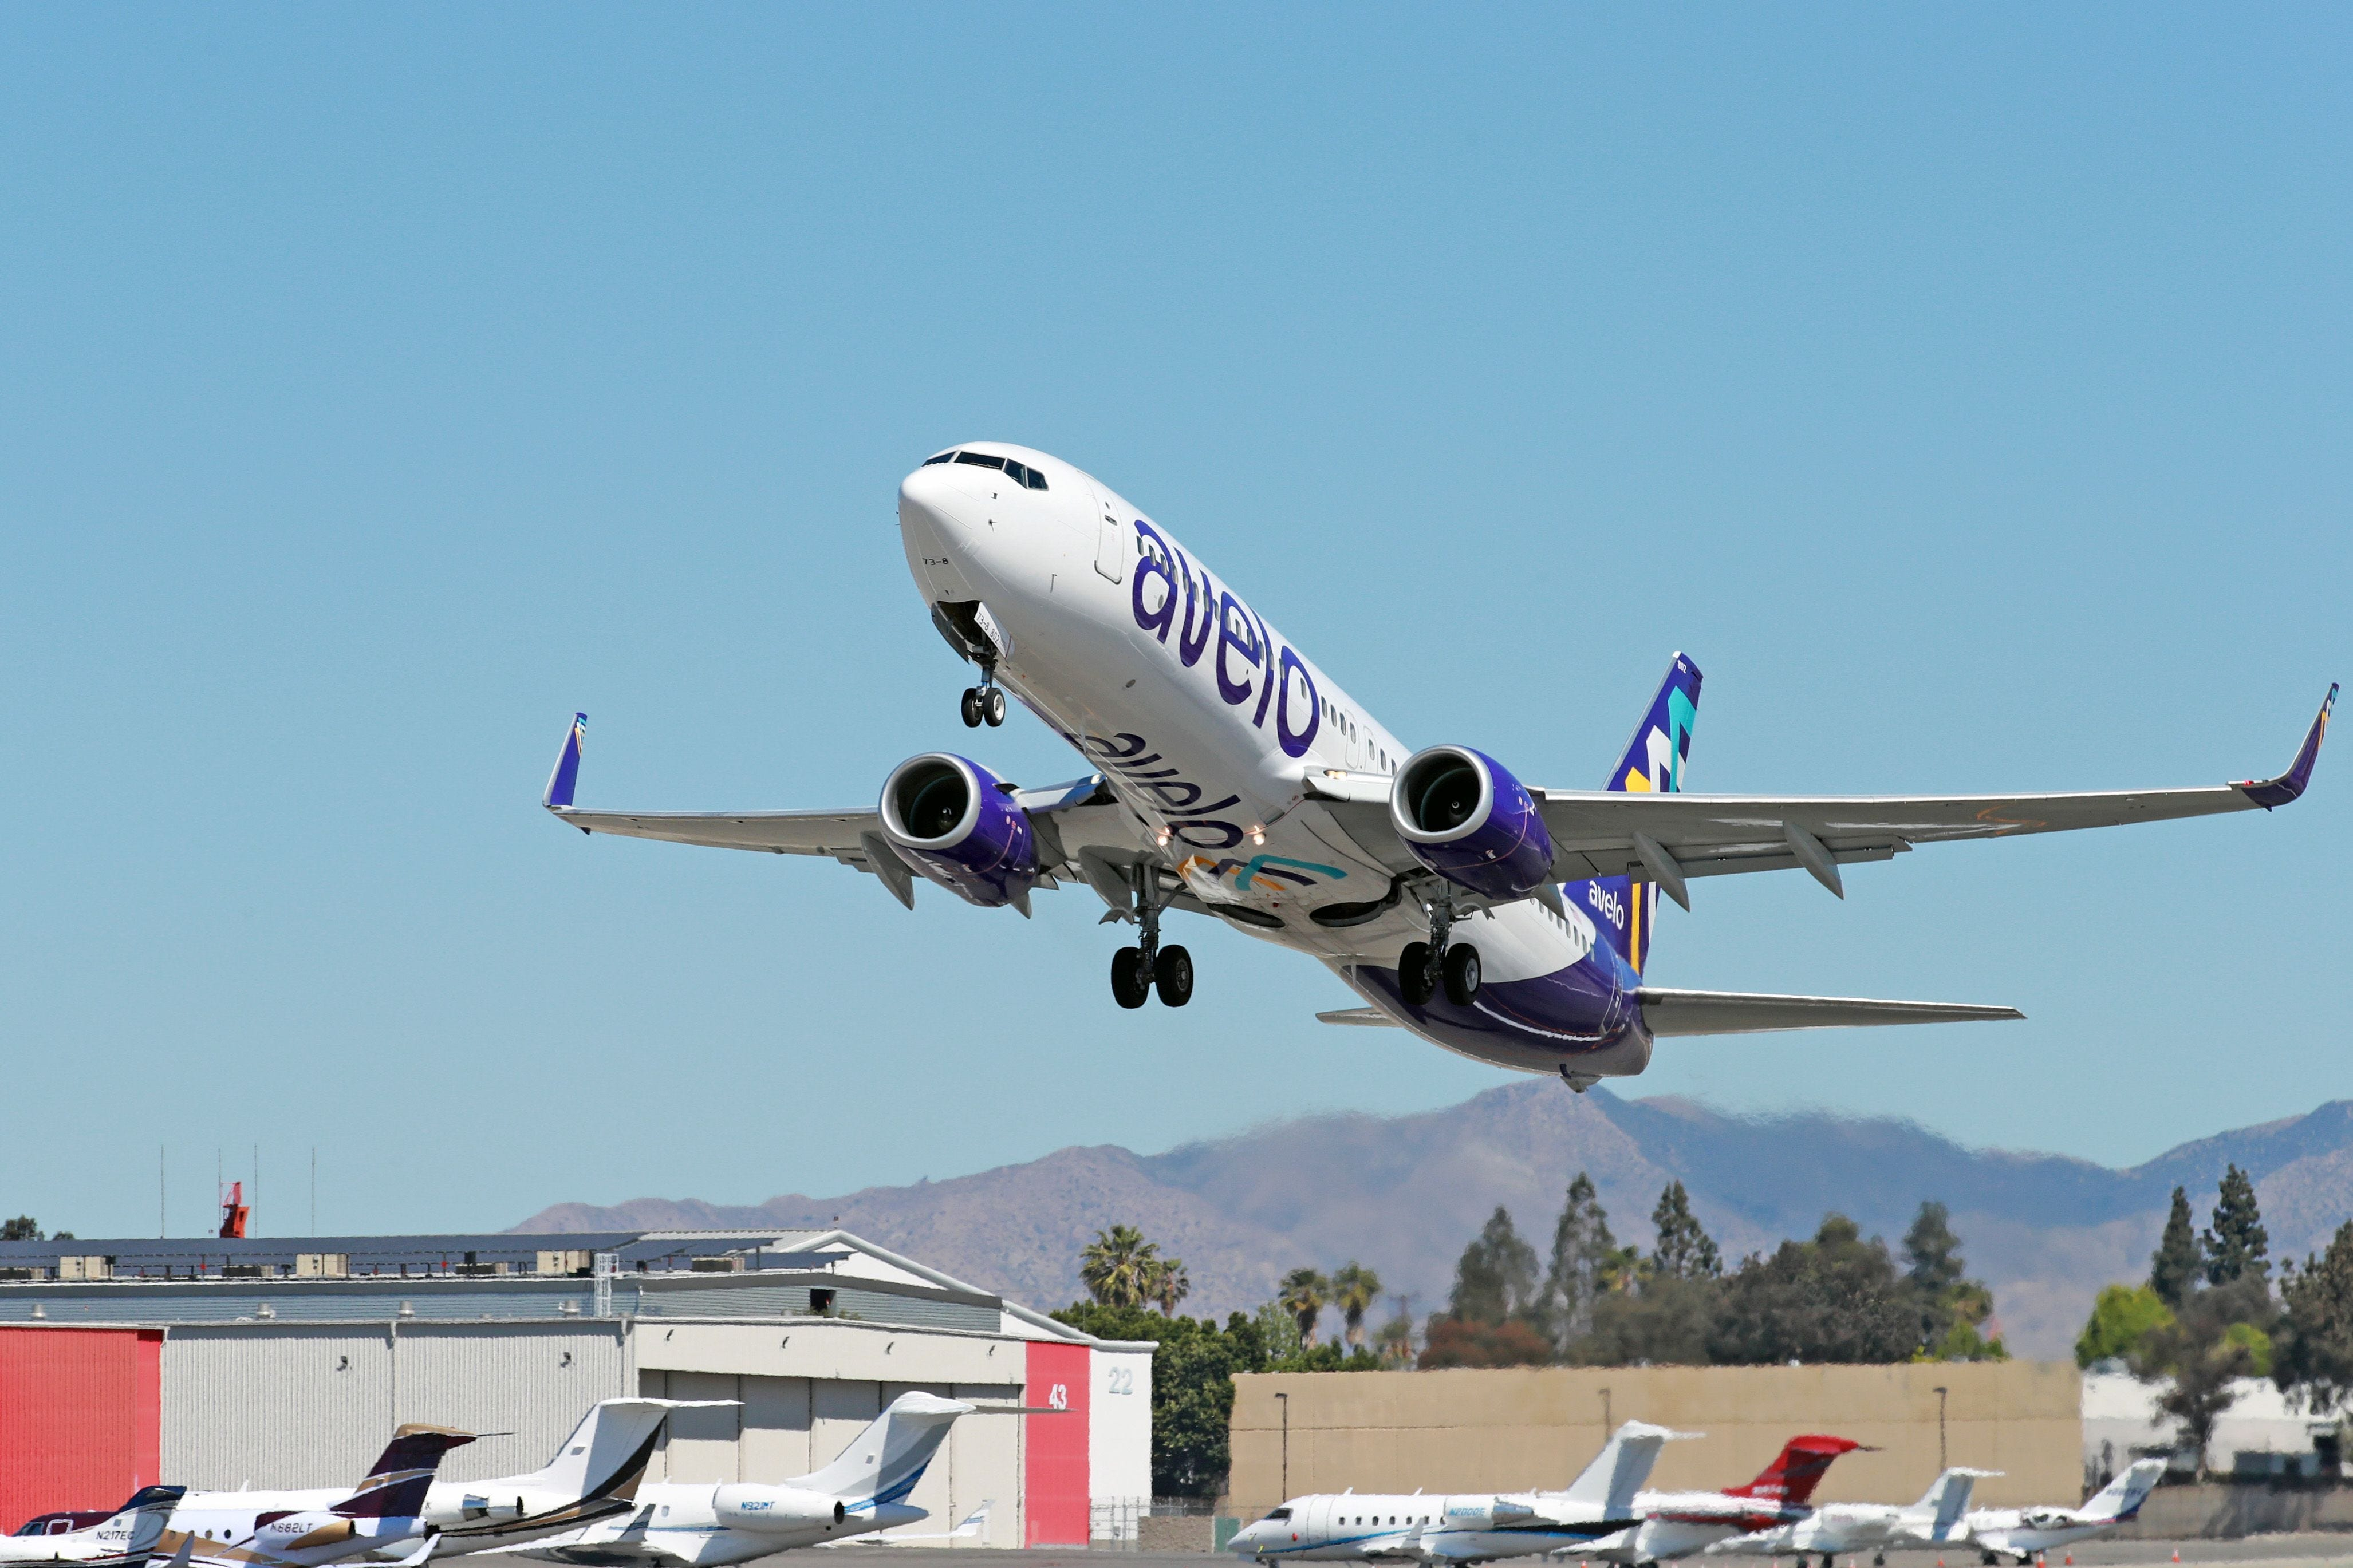 New US airline has $19 fares, $10 checked bags and flies out of small airports: Meet Avelo Airlines